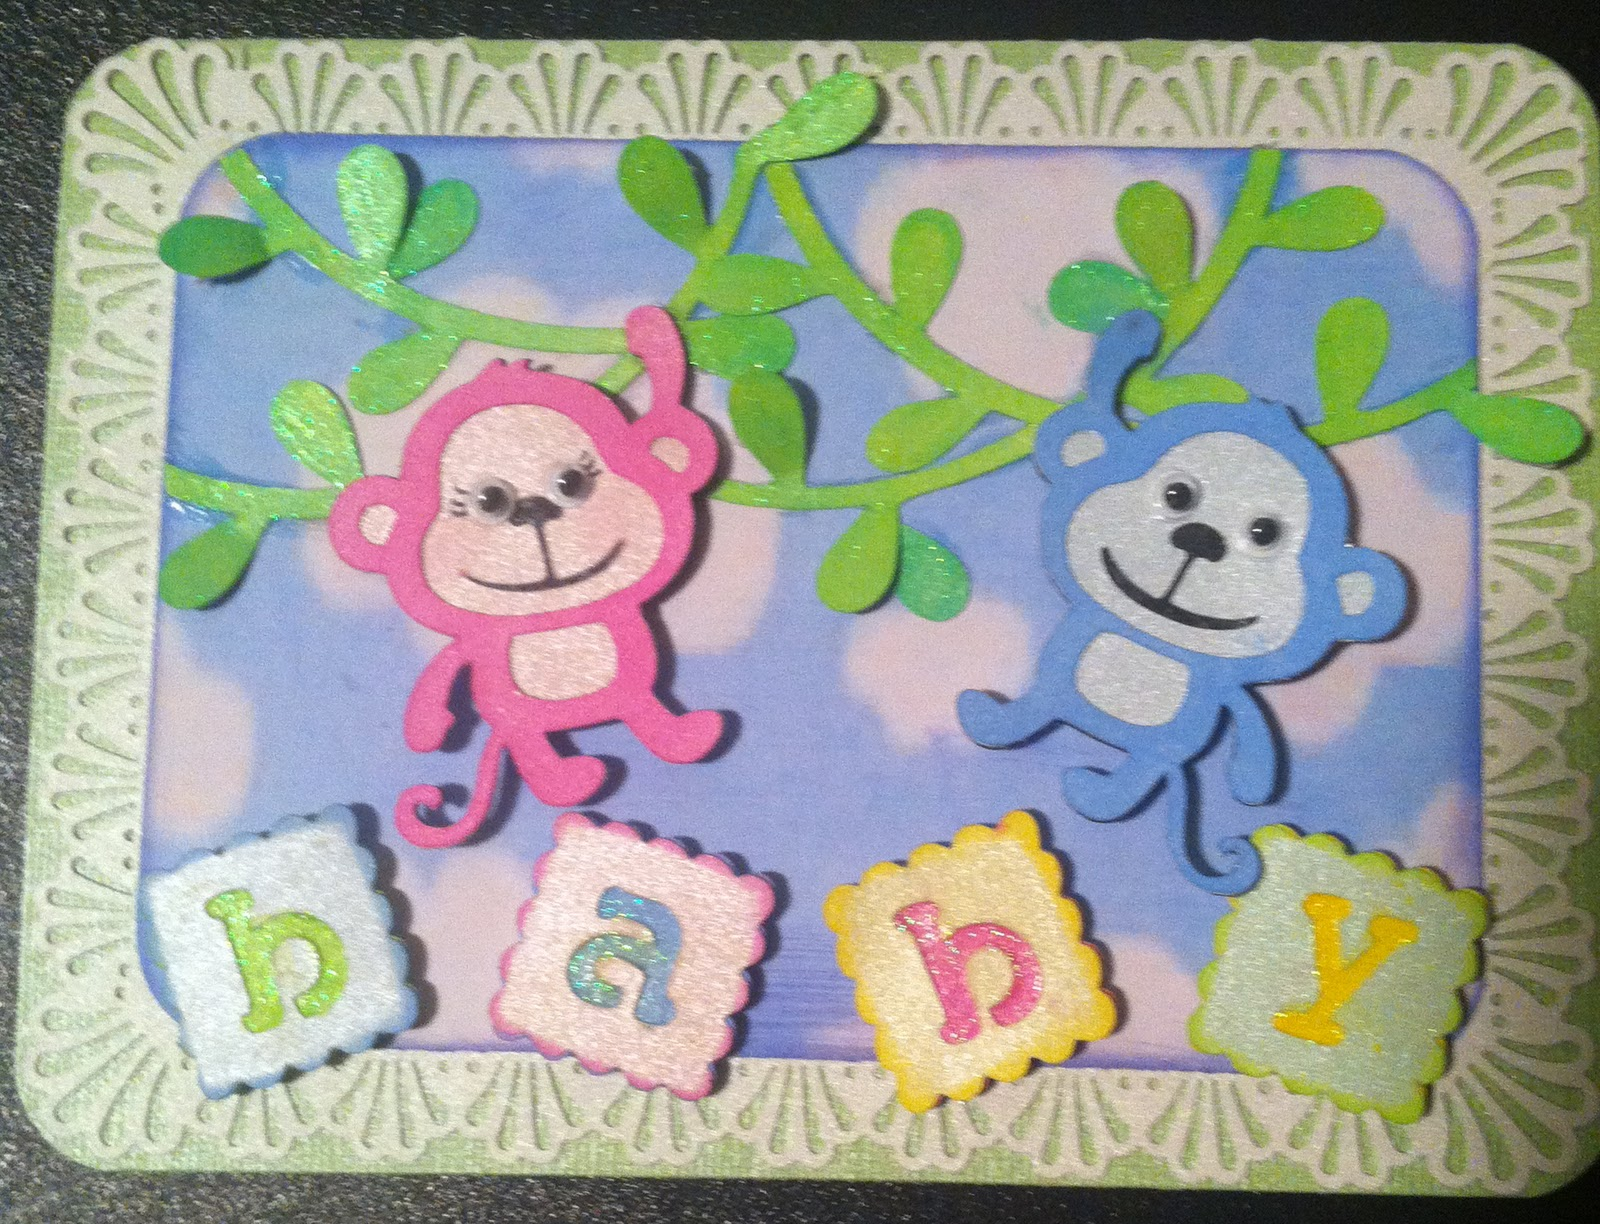 Christa's Creations: Monkey Baby Card